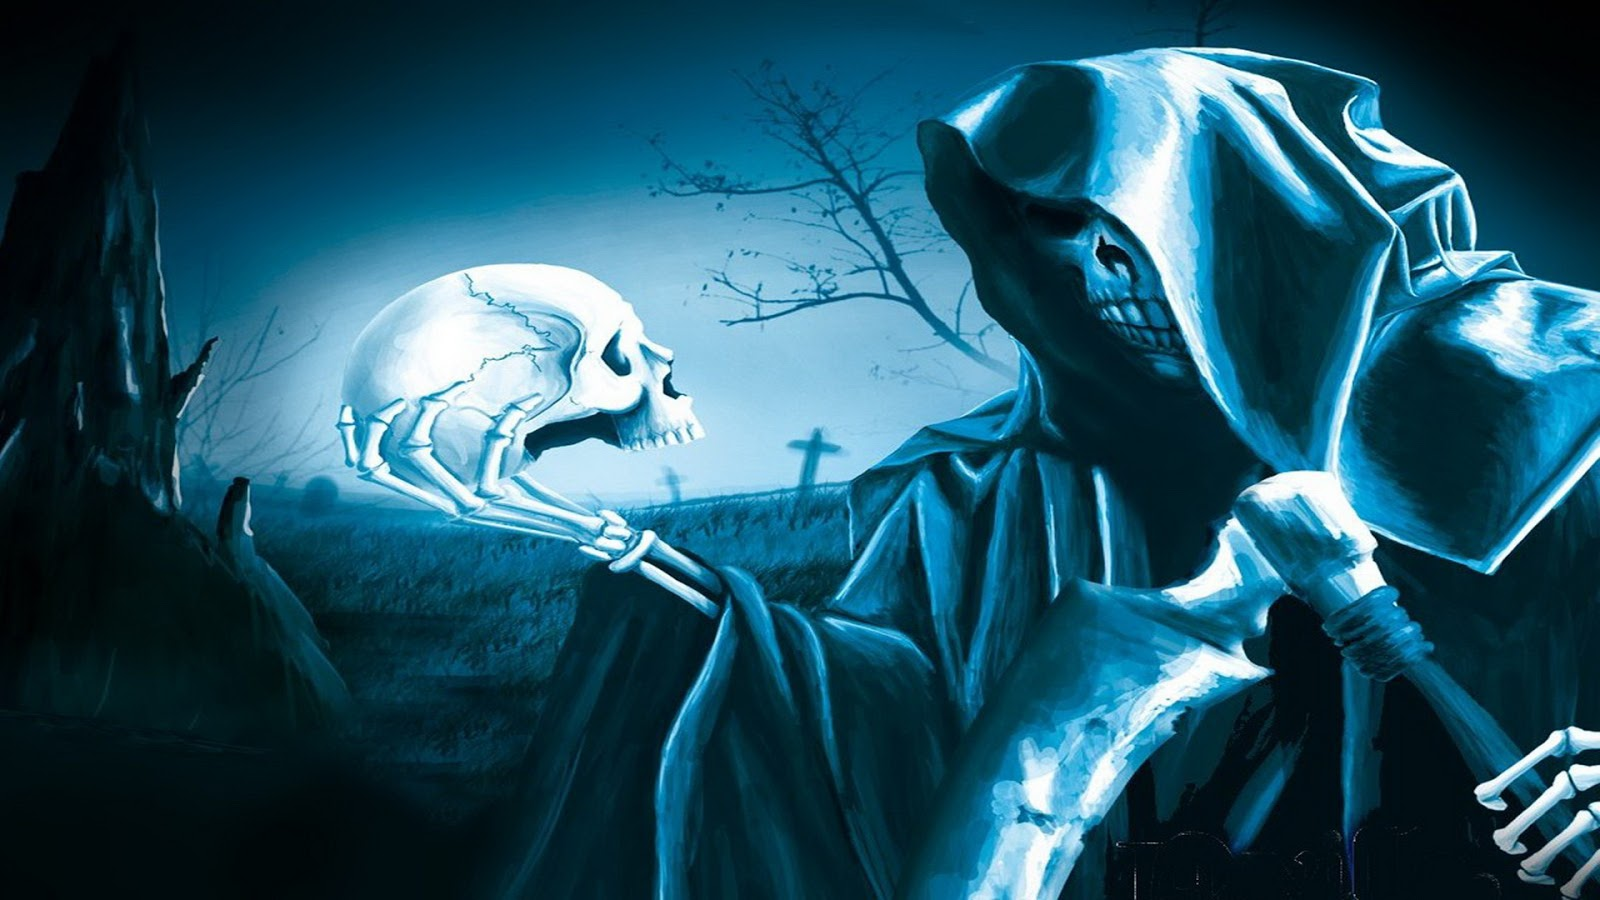 skull wallpaper wallpapers hd - photo #23